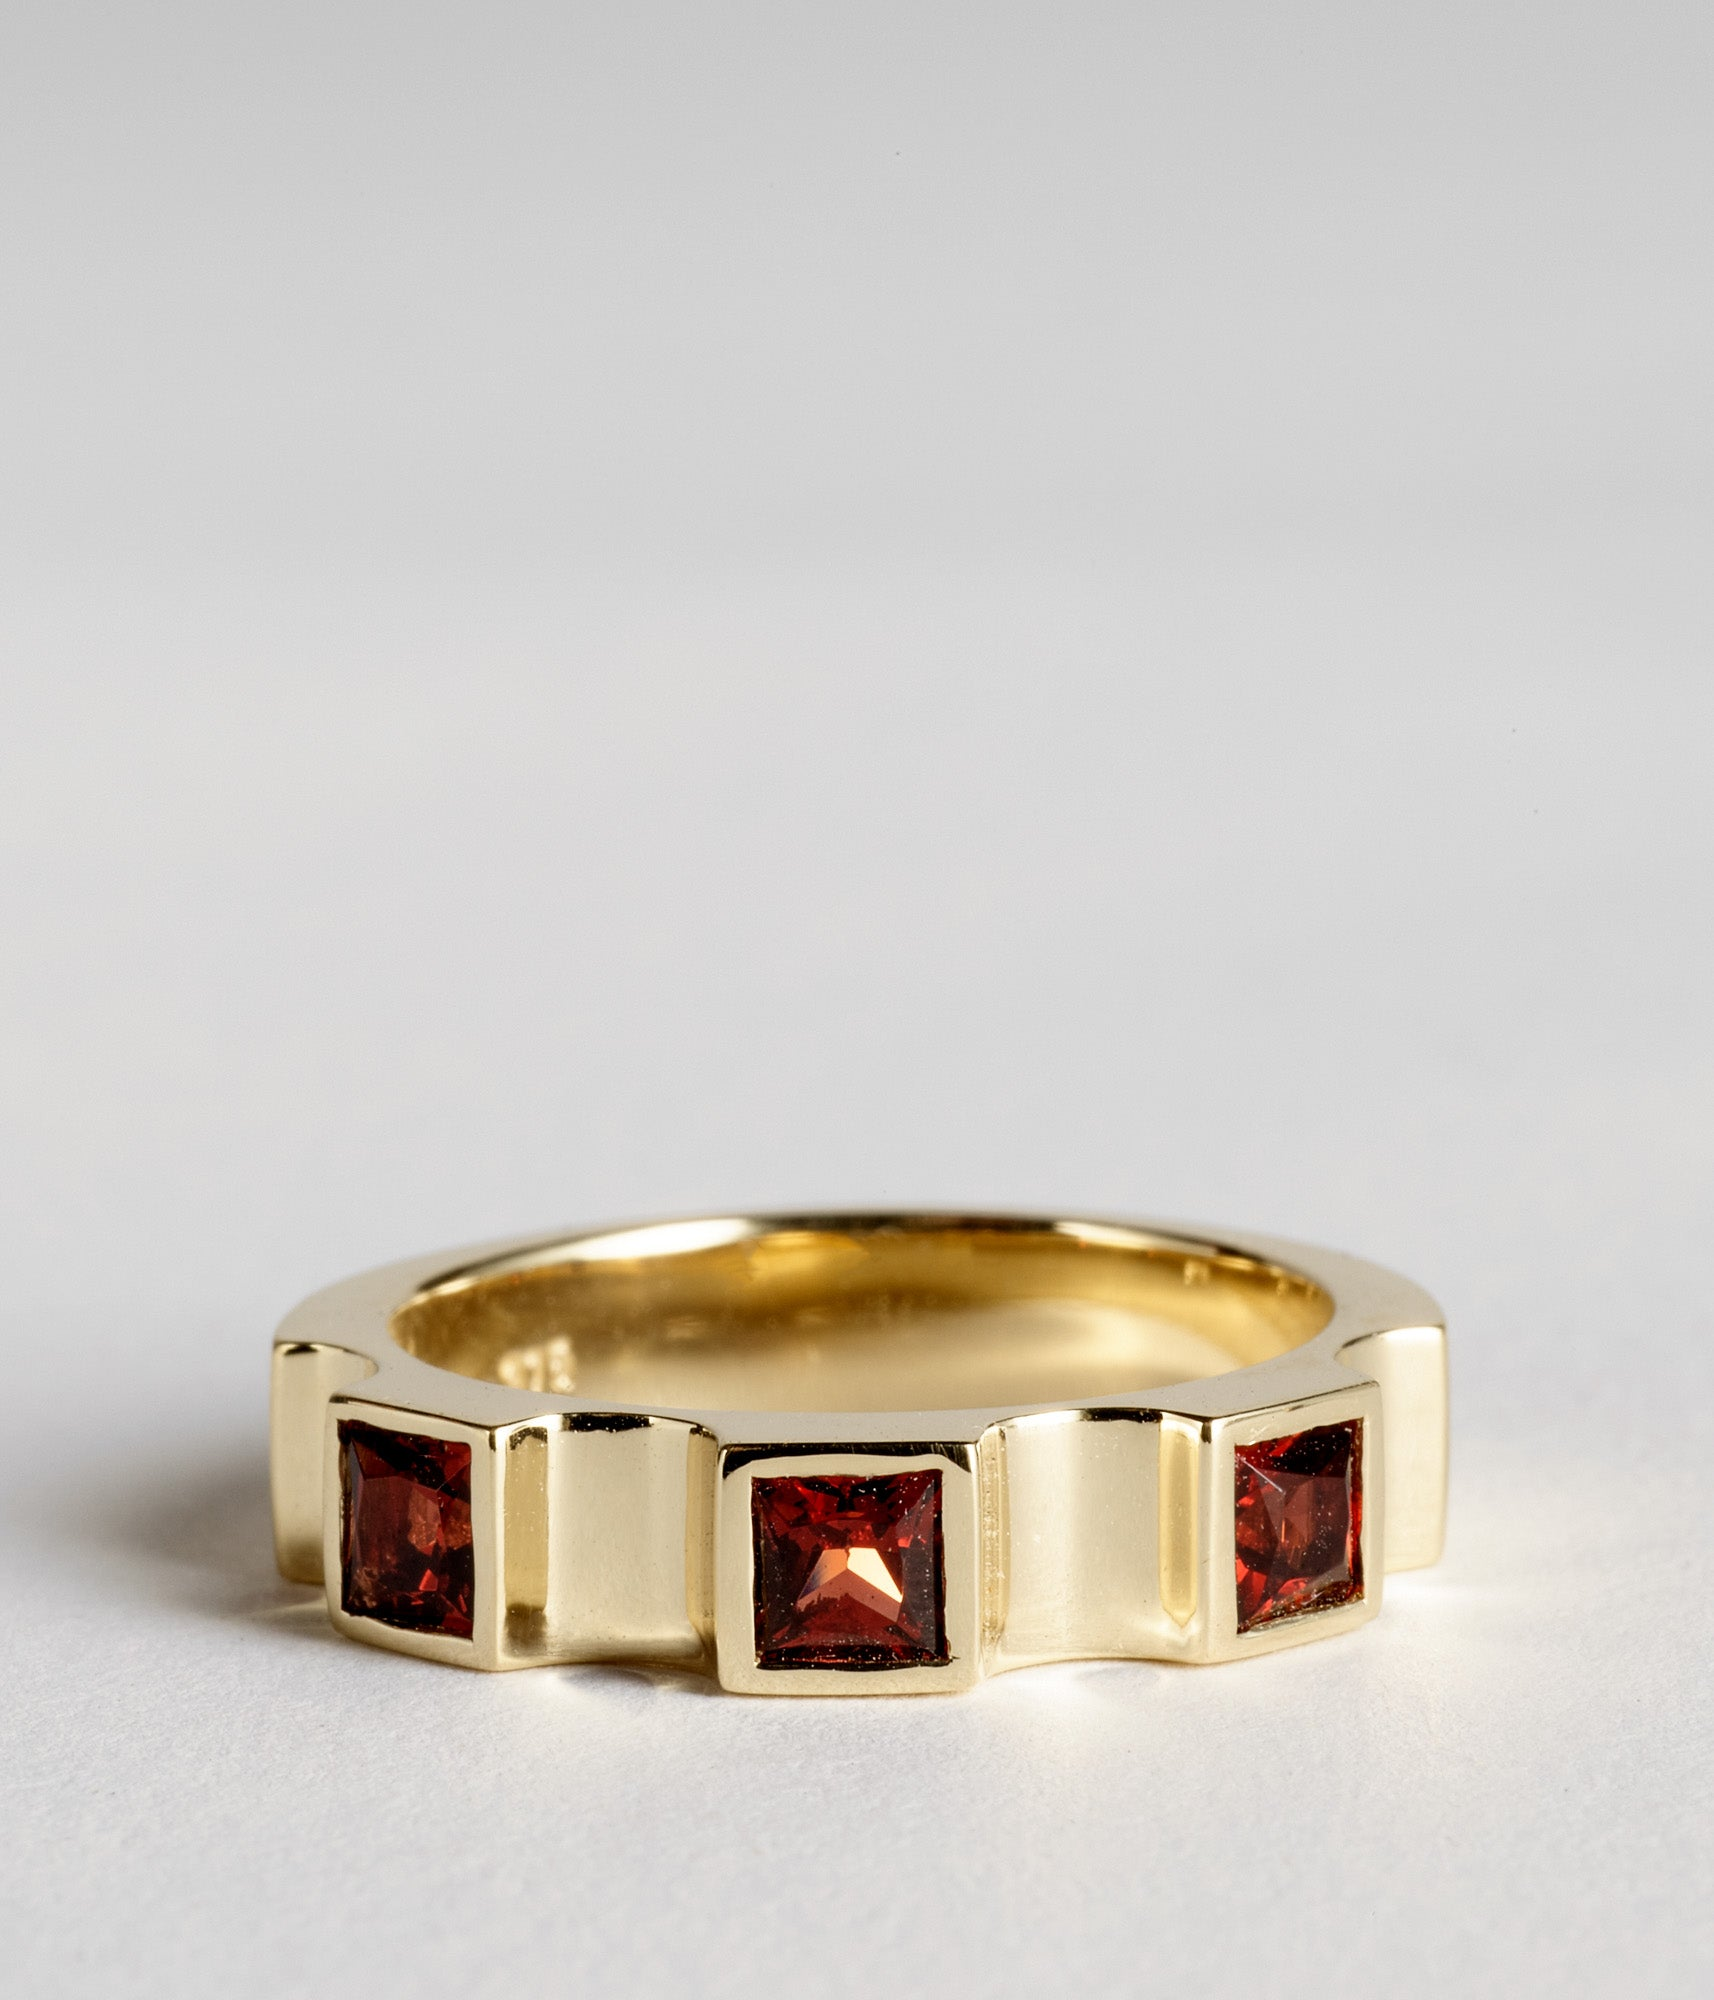 Parmentier window ring - Almandine Garnet